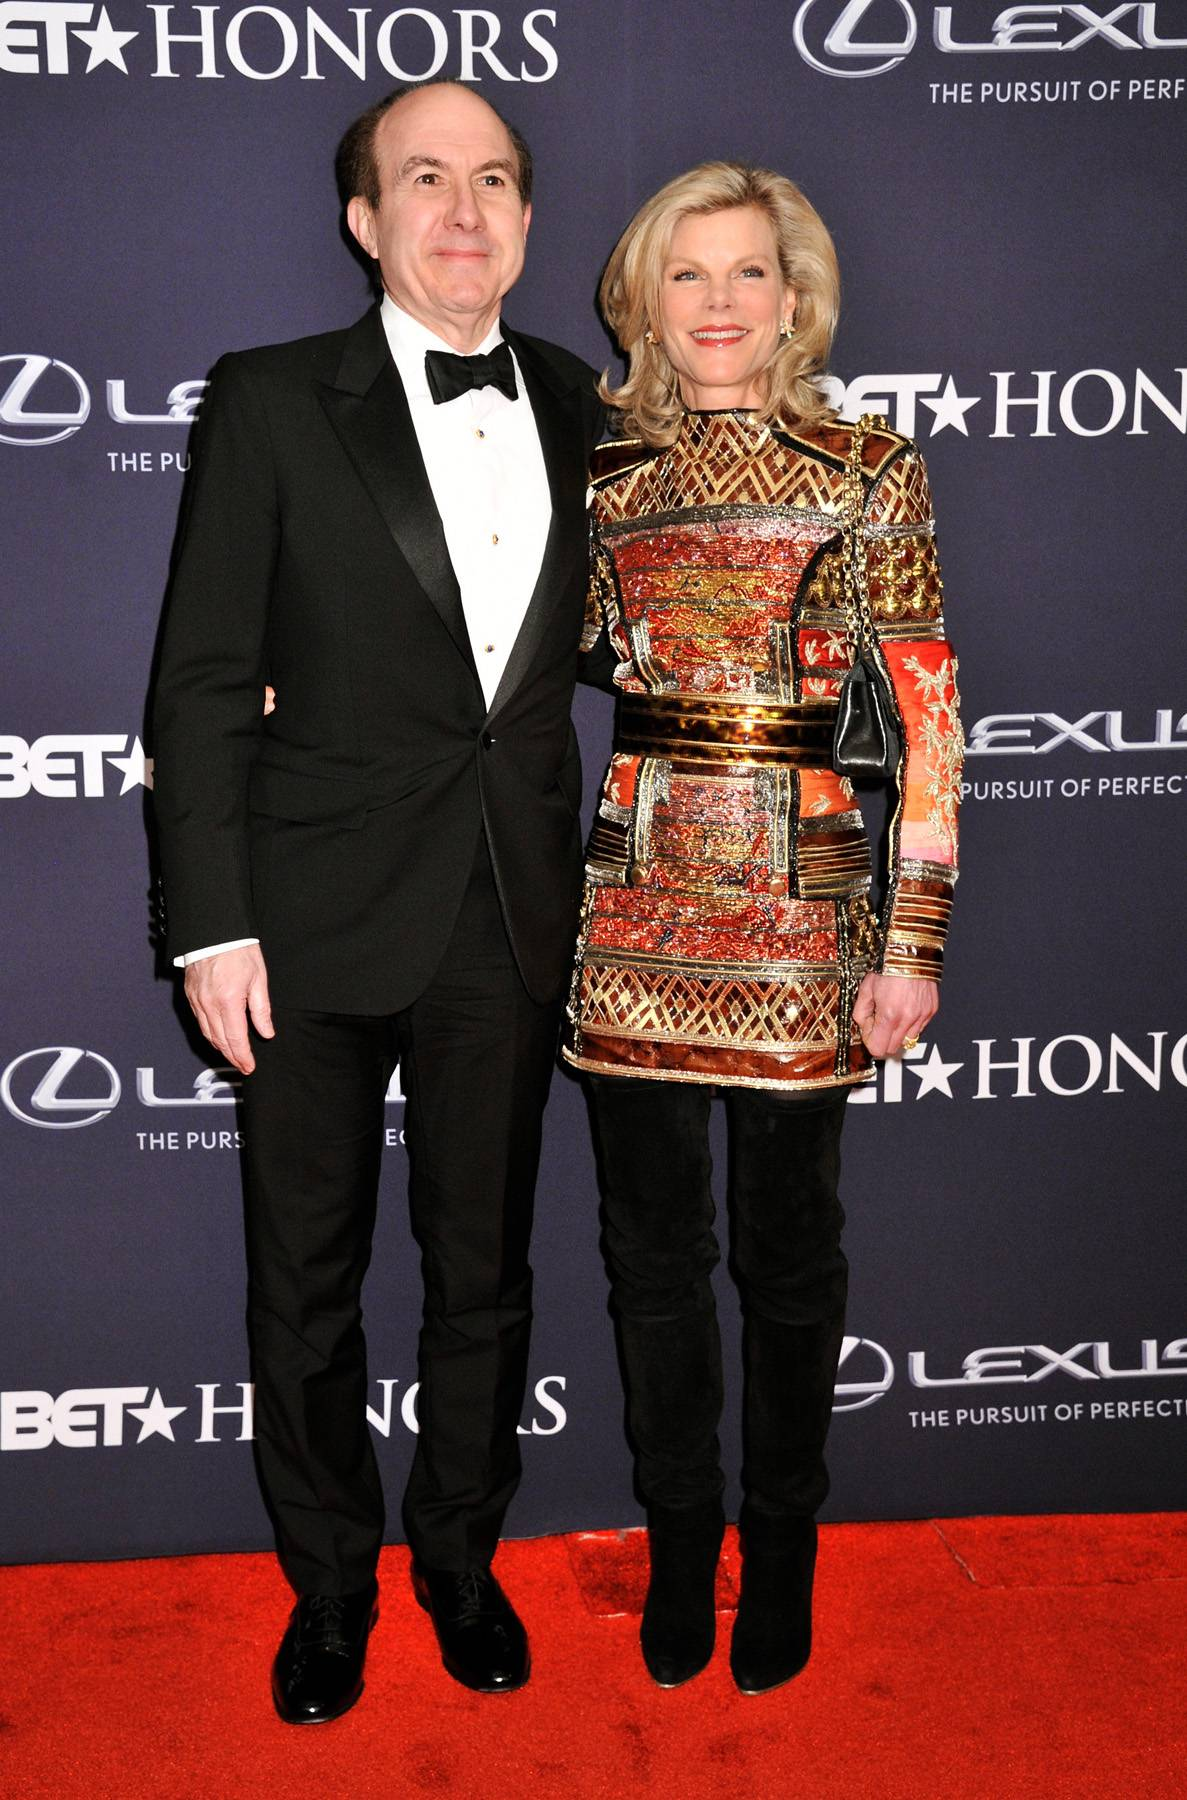 The President and First Lady  - President and CEO of Viacom Philippe Dauman and Deborah Dauman look snazzy for The BET Honors ceremony. (Photo: Kris Connor/BET/Getty Images for BET)